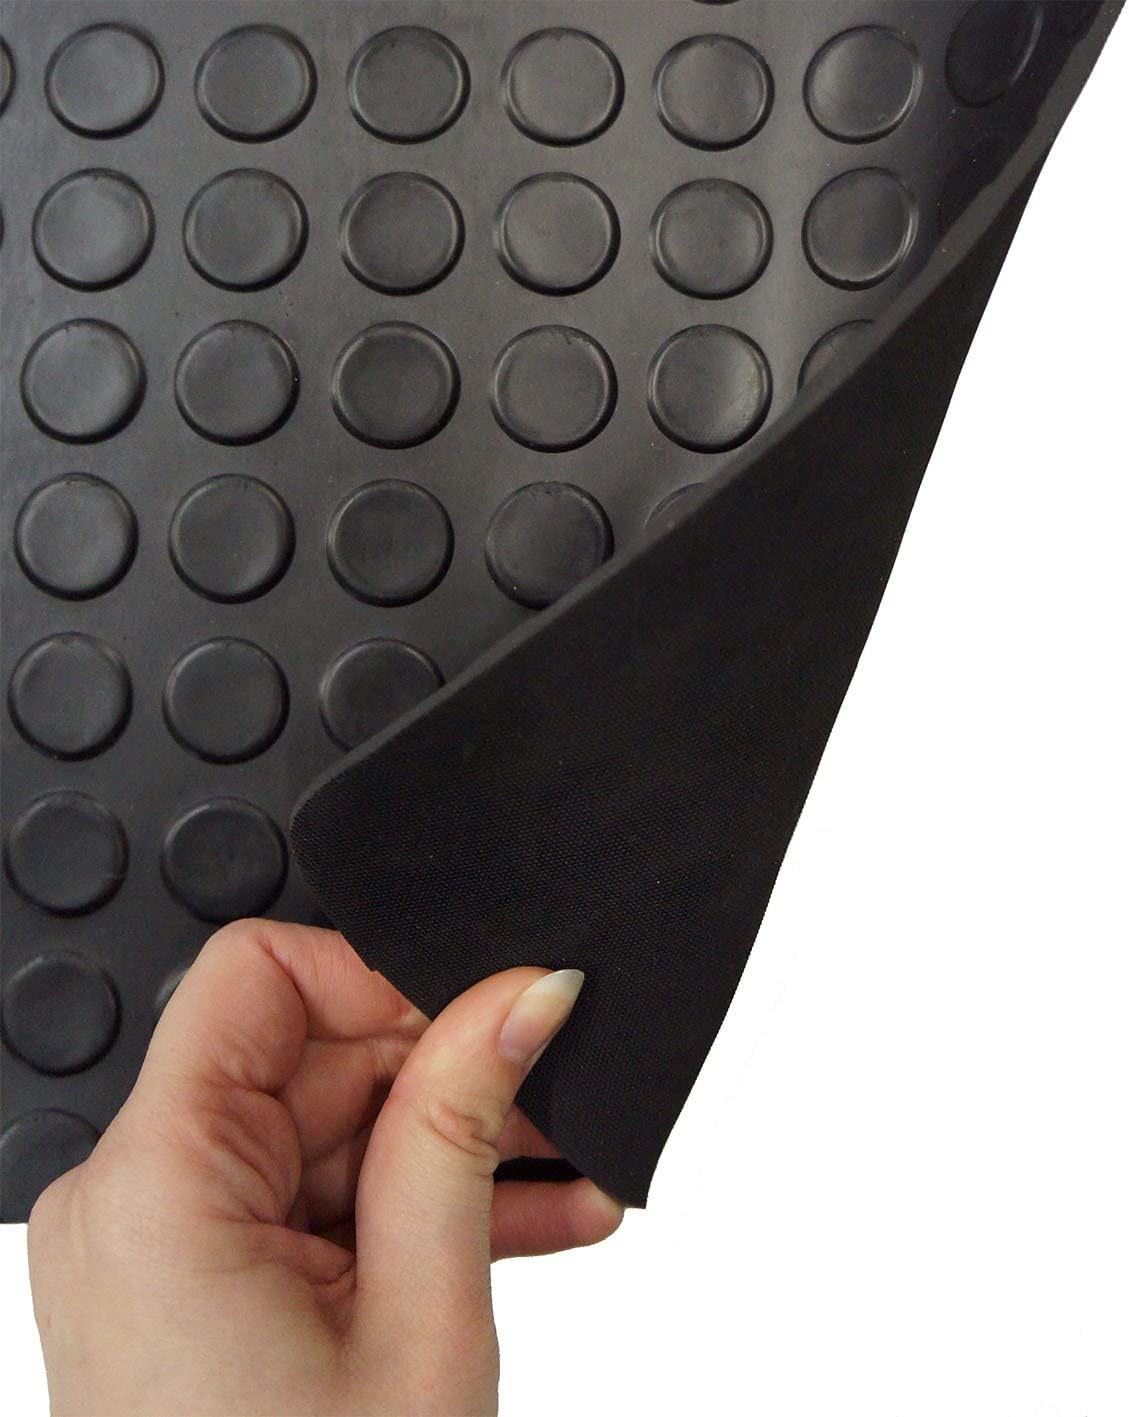 - No Fixing Option Fully Tailored Black Penny Pattern 4mm Rubber Van Mats for T6 Premier Products 2015 - Date